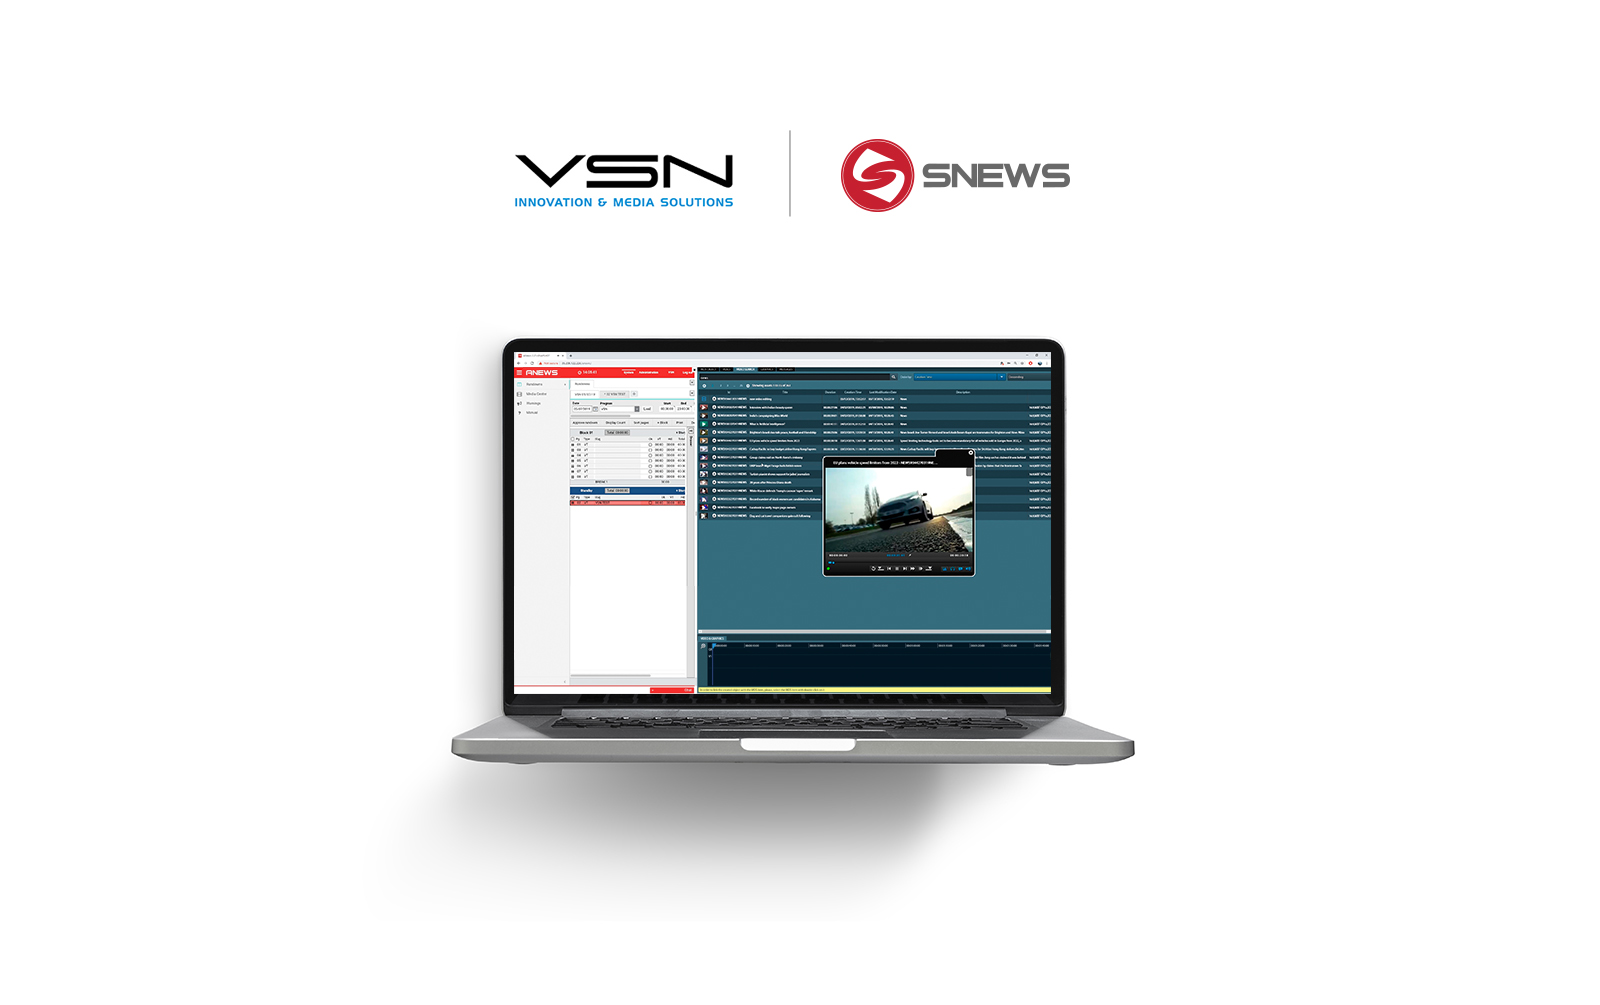 VSN partnership with SNEWS